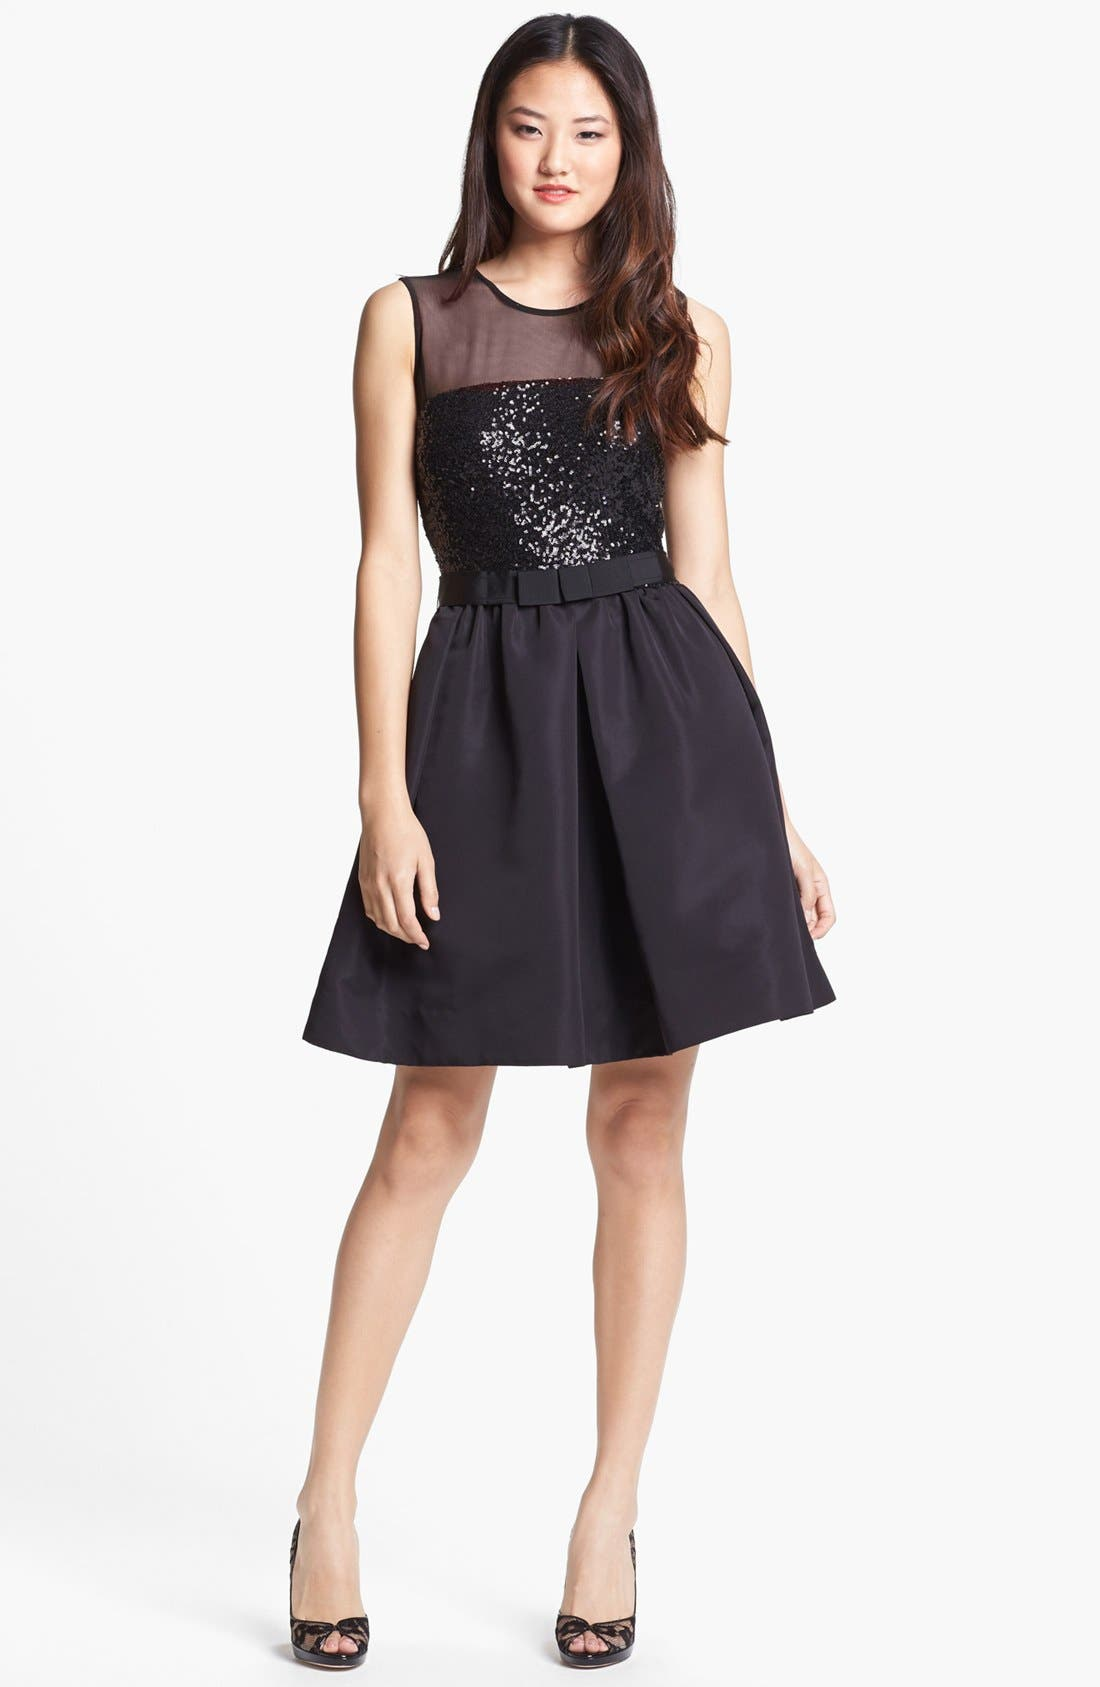 Alternate Image 1 Selected - Taylor Dresses Mixed Media Fit & Flare Dress